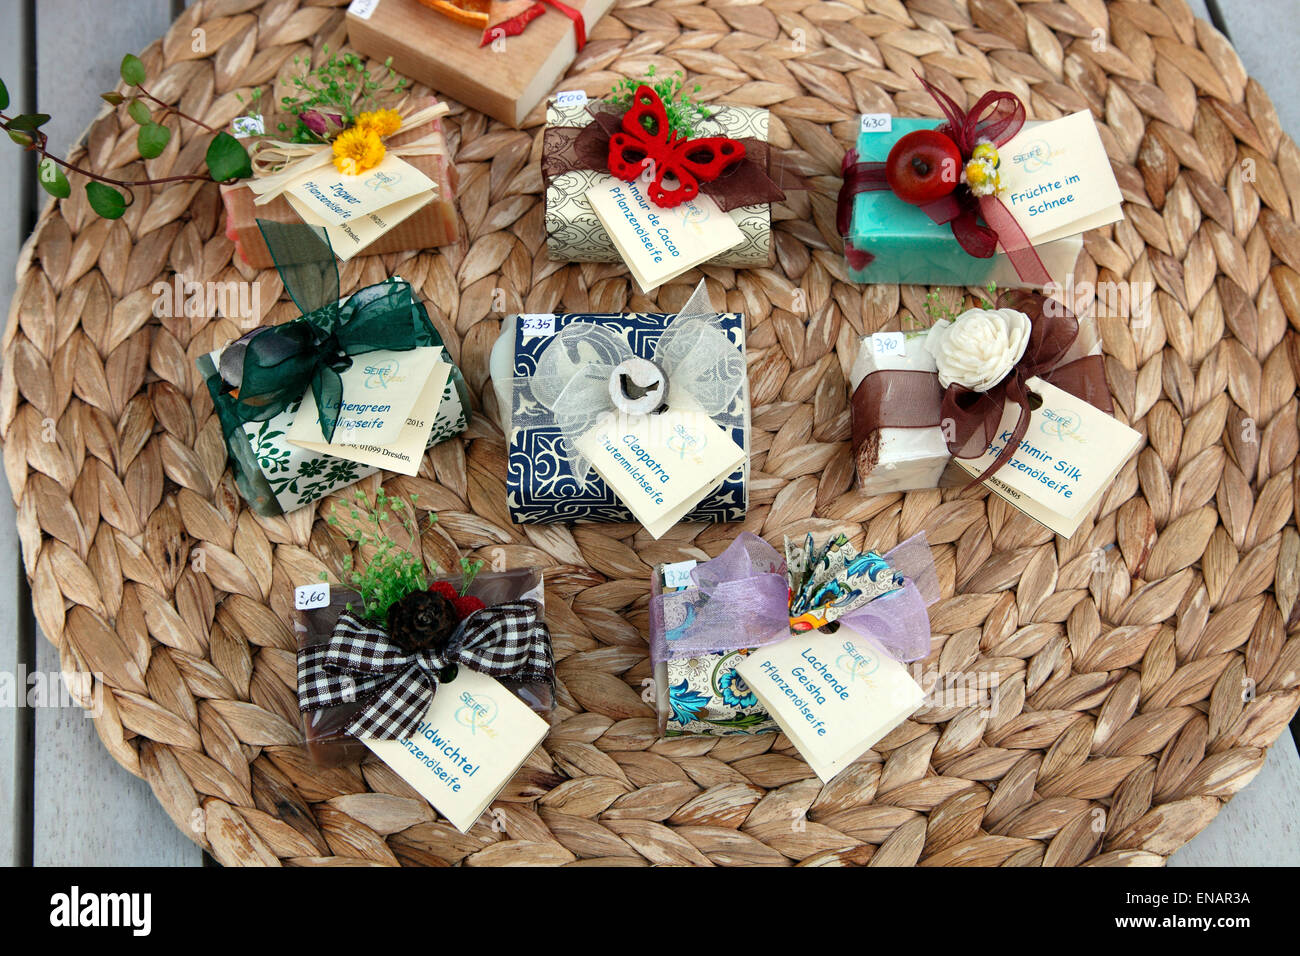 Handmade Seife artisan soaps for sale in Weimar. - Stock Image